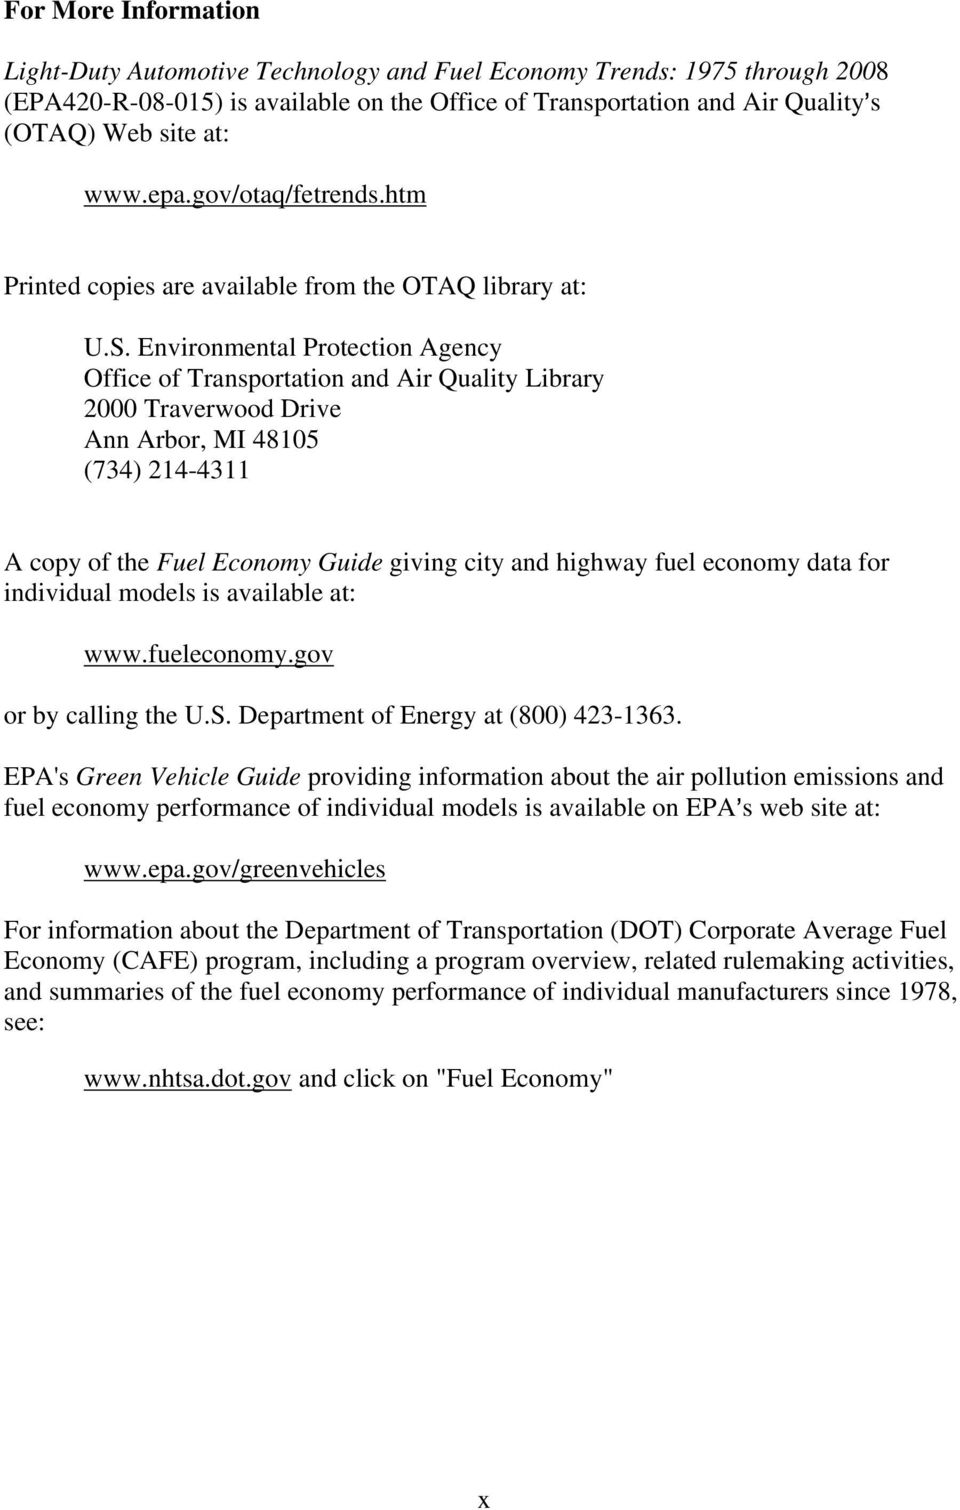 Environmental Protection Agency Office of Transportation and Air Quality Library 2000 Traverwood Drive Ann Arbor, MI 48105 (734) 214-4311 A copy of the Fuel Economy Guide giving city and highway fuel